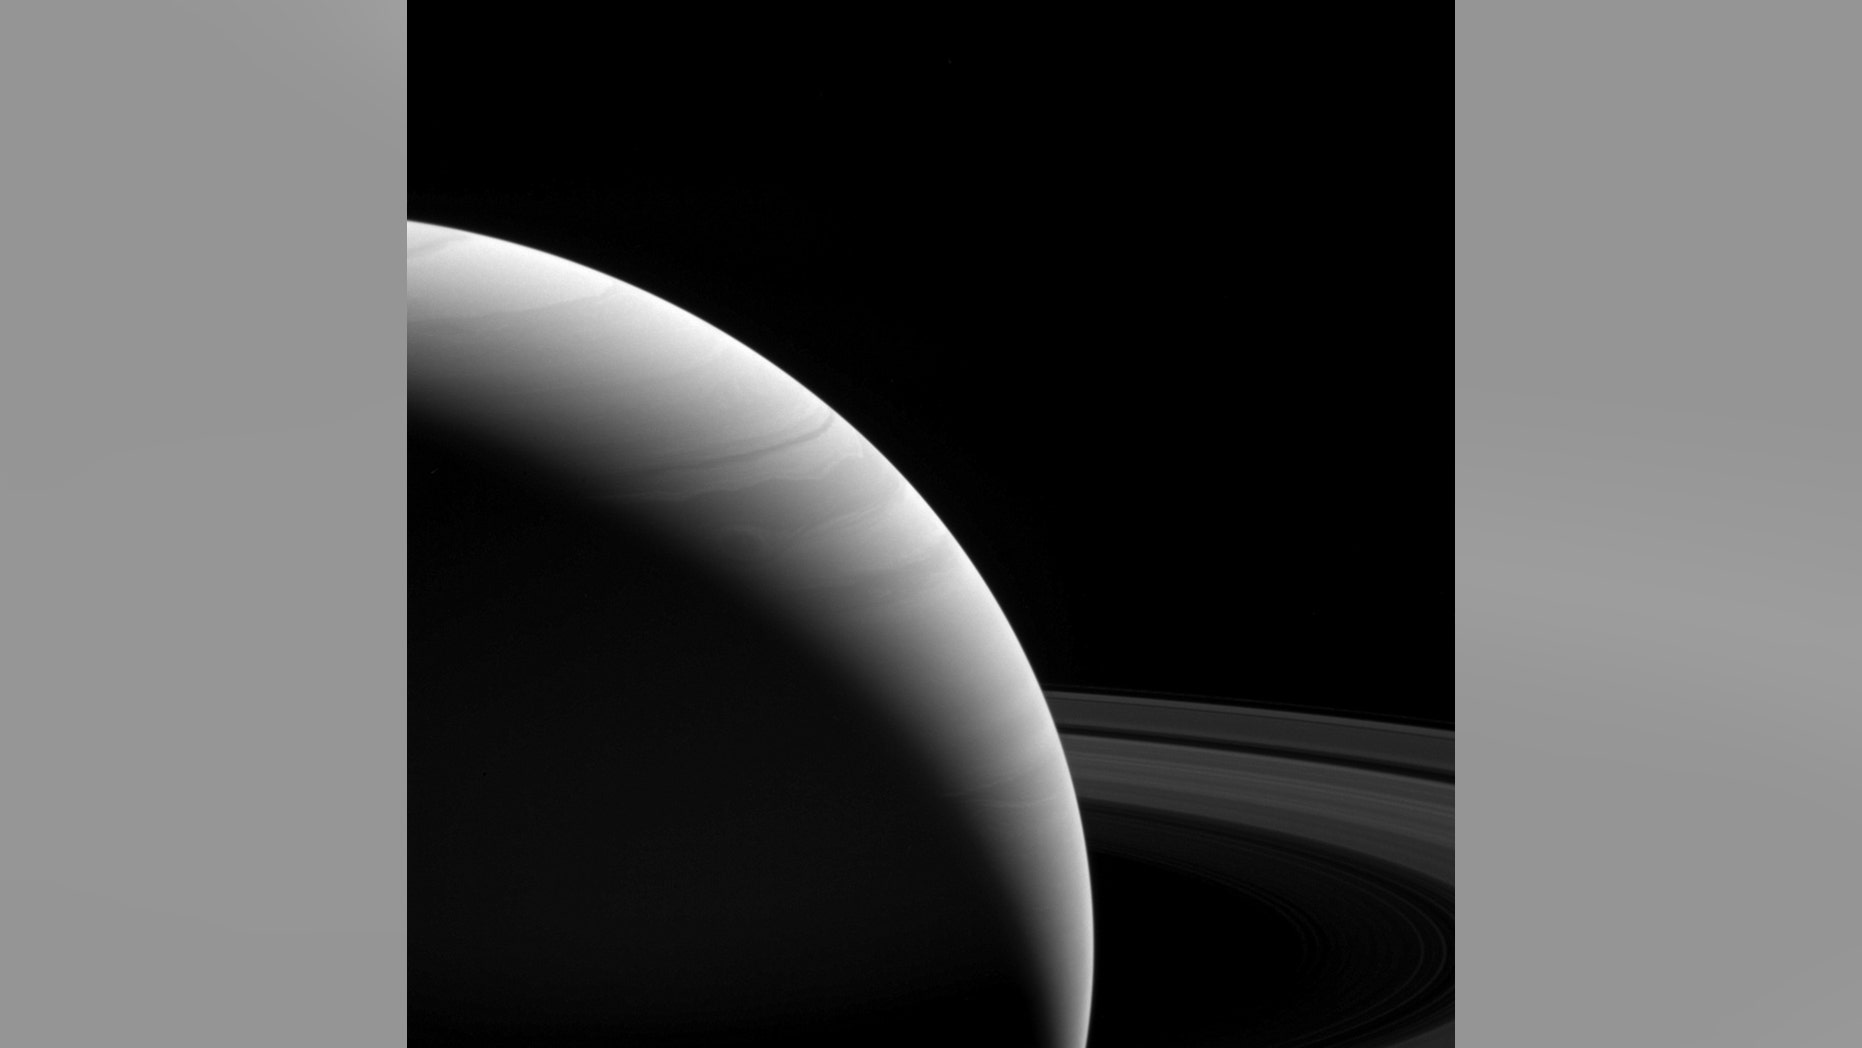 NASA's Cassini spacecraft captured this view of Saturn on Feb. 25, 2017, from a distance of 762,000 miles (1.23 million kilometers).